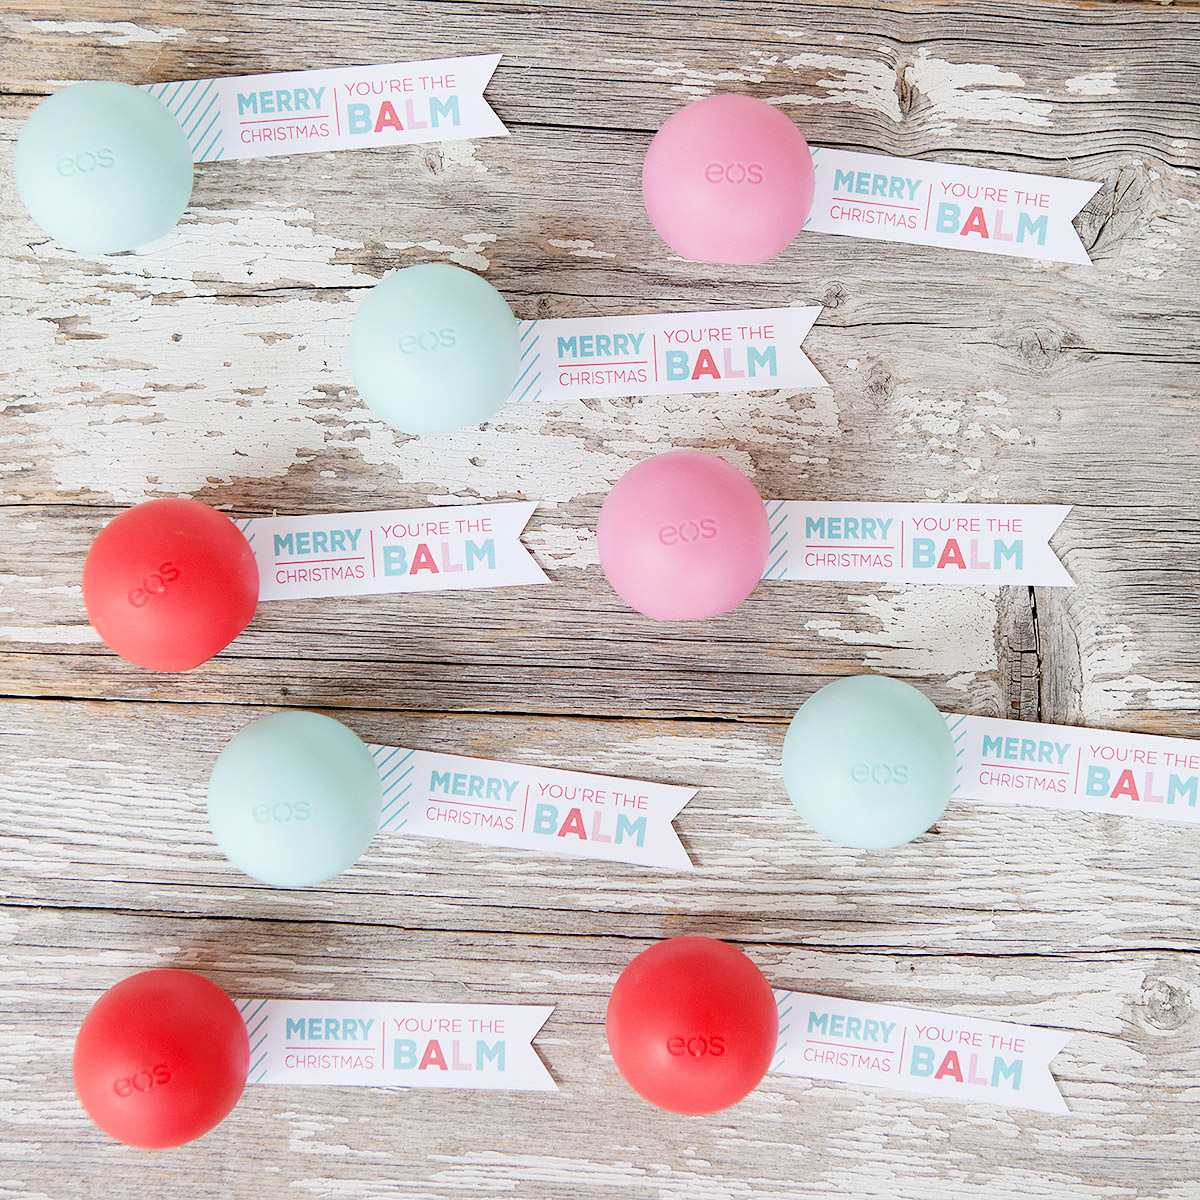 photograph regarding You're the Balm Free Printable named EOS Lip Balm \